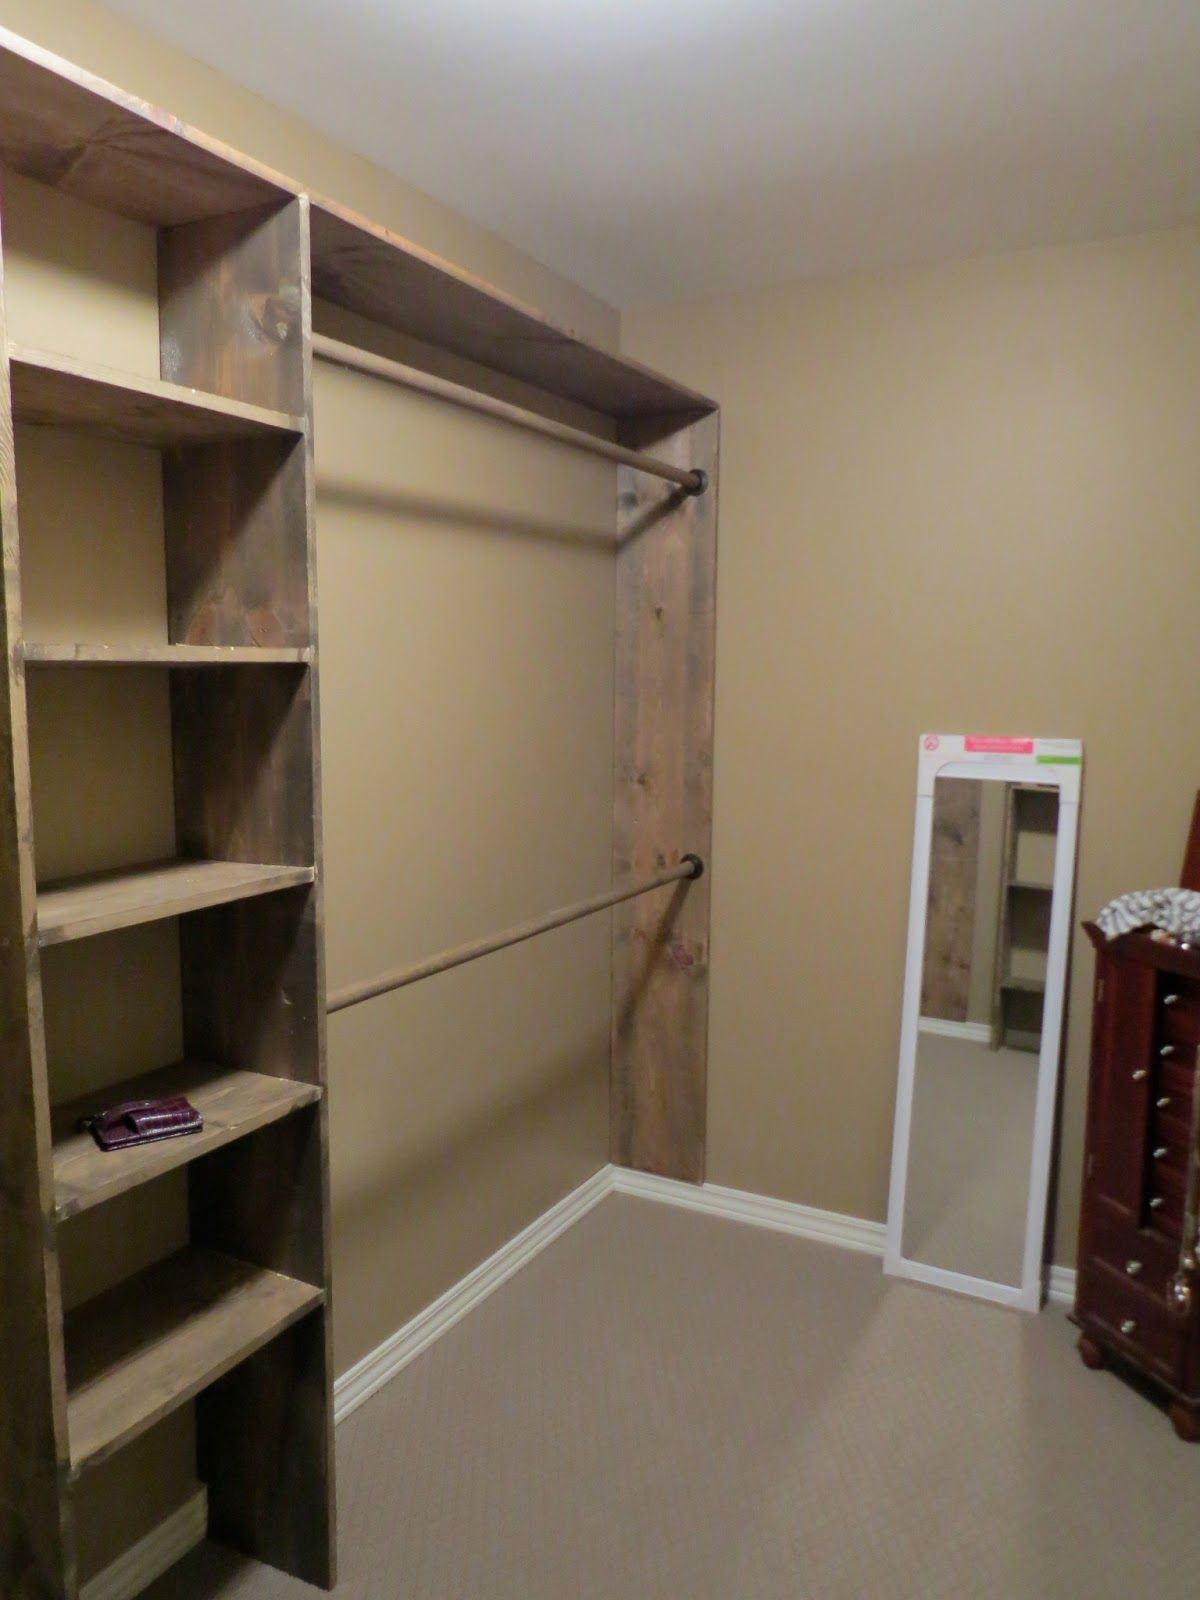 Let 39 S Just Build A House Walk In Closets No More Living Out Of Laundry Baskets Diy